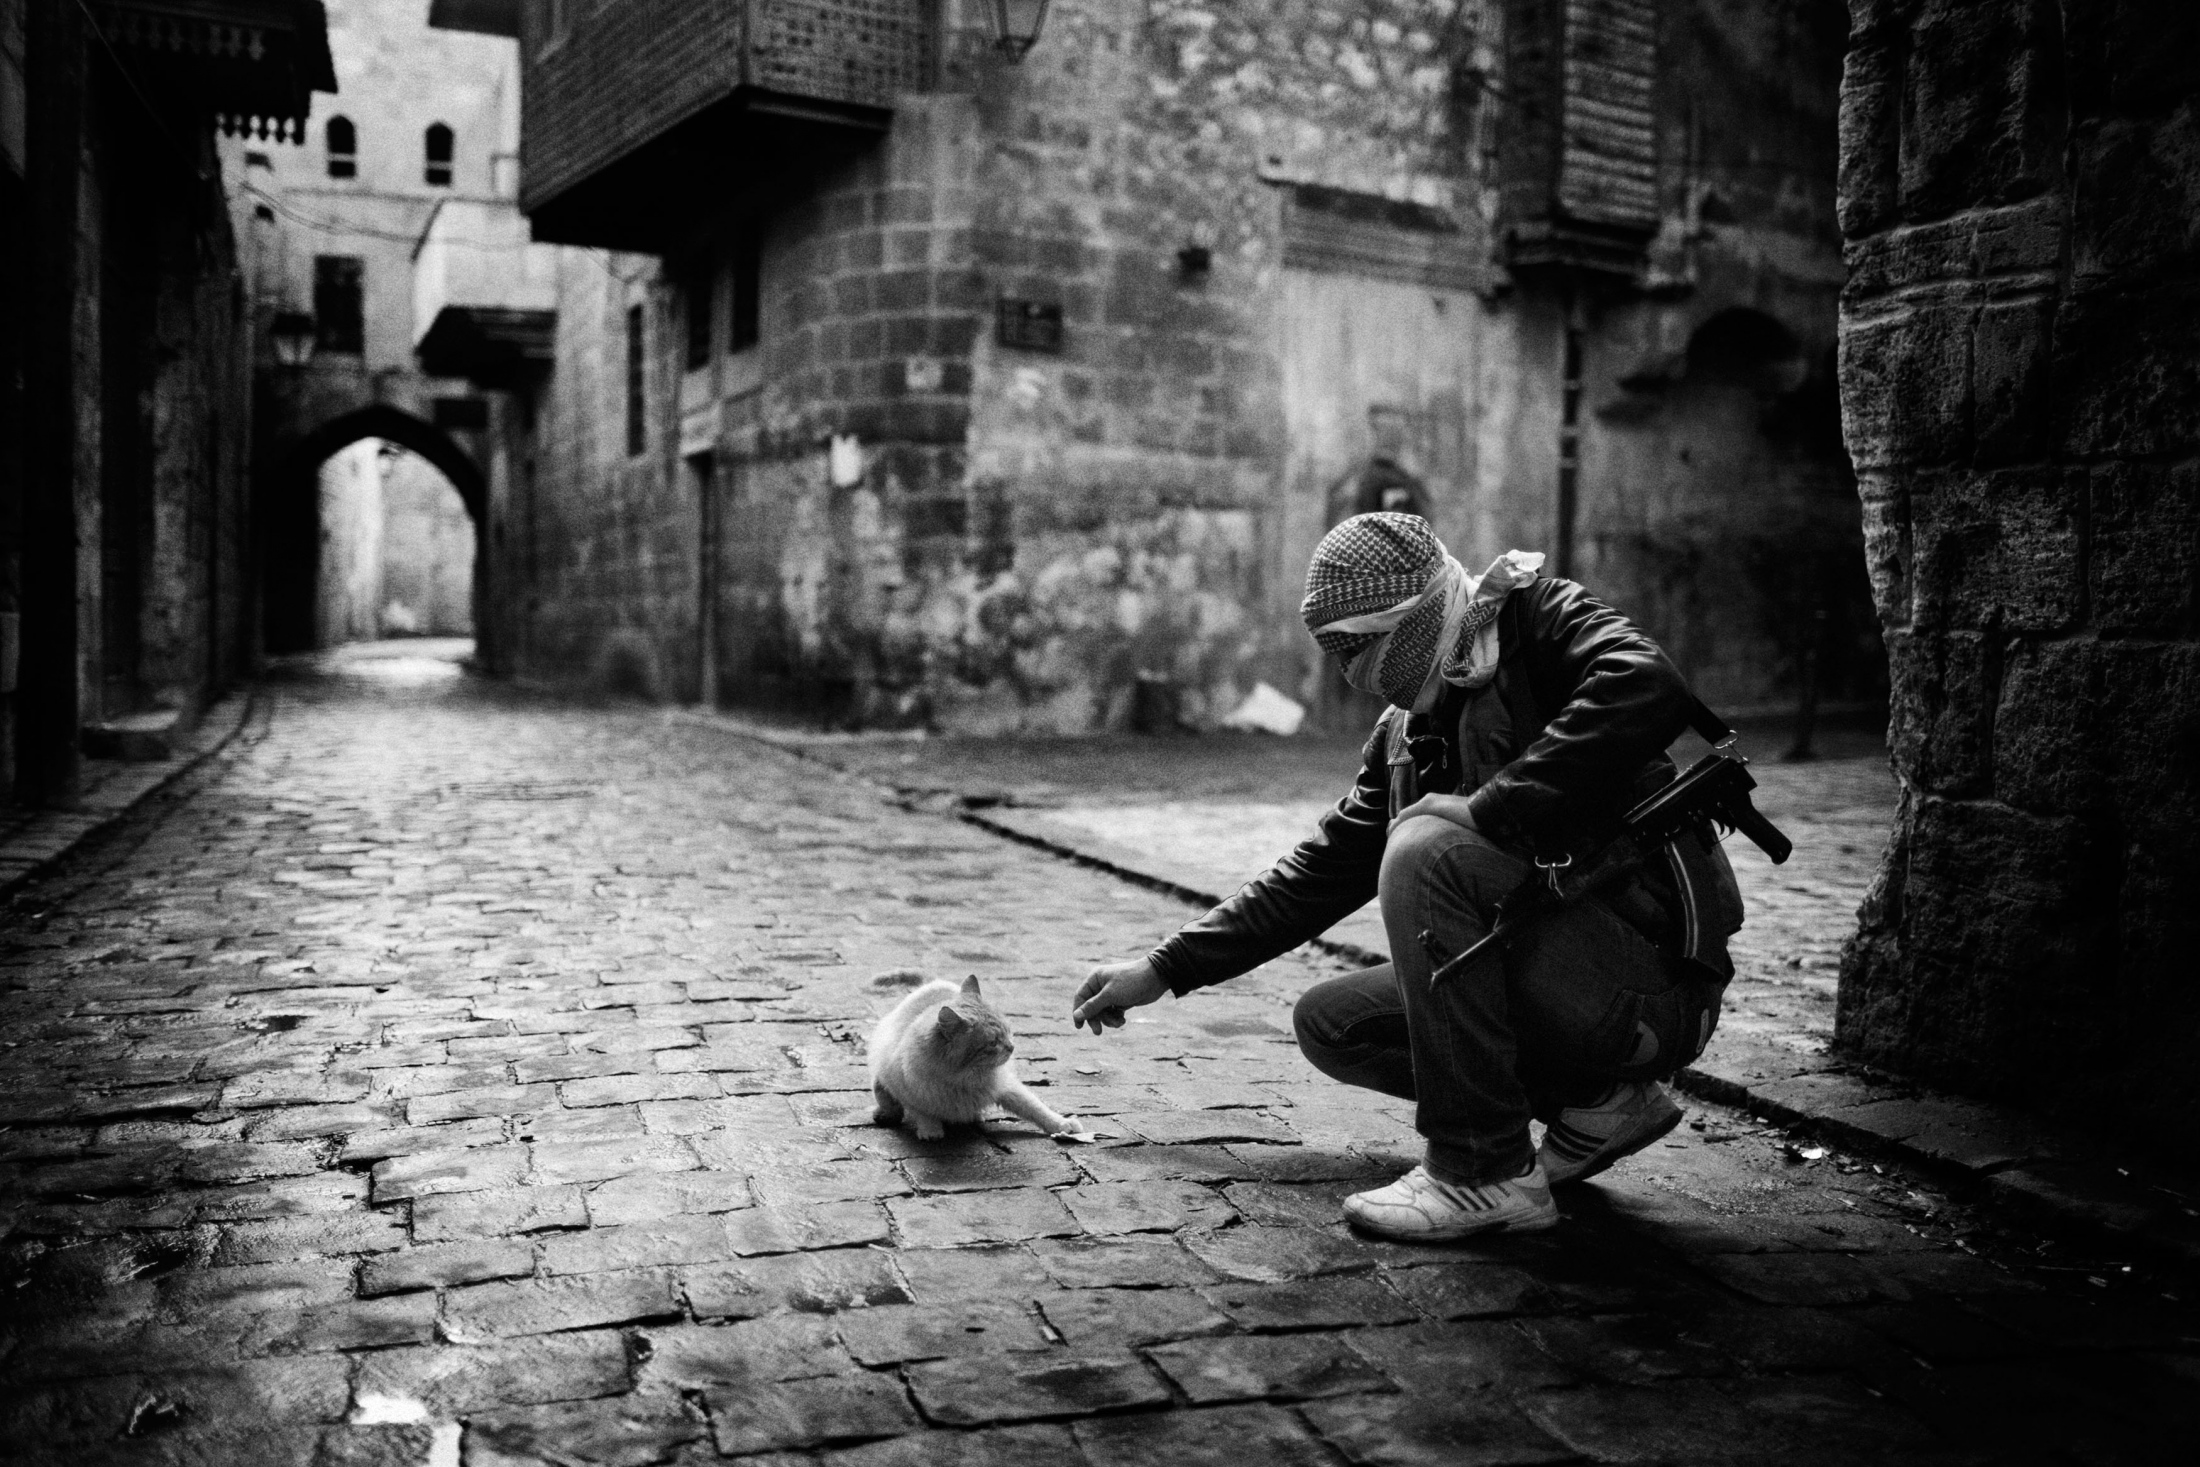 """A Syrian islamist rebel giving food to a cat in the Old City neighborhood of Aleppo, Syria, Wednesday, Jan. 6, 2013. The United Nations estimated that more than 400,000 people have been killed in Syria's 60-month-old uprising against authoritarian rule, a toll one-third higher than what anti-regime activists had counted. The U.N. human rights chief called the toll """"truly shocking."""" Copyright: Spanish Photojournalist Andoni Lubaki"""